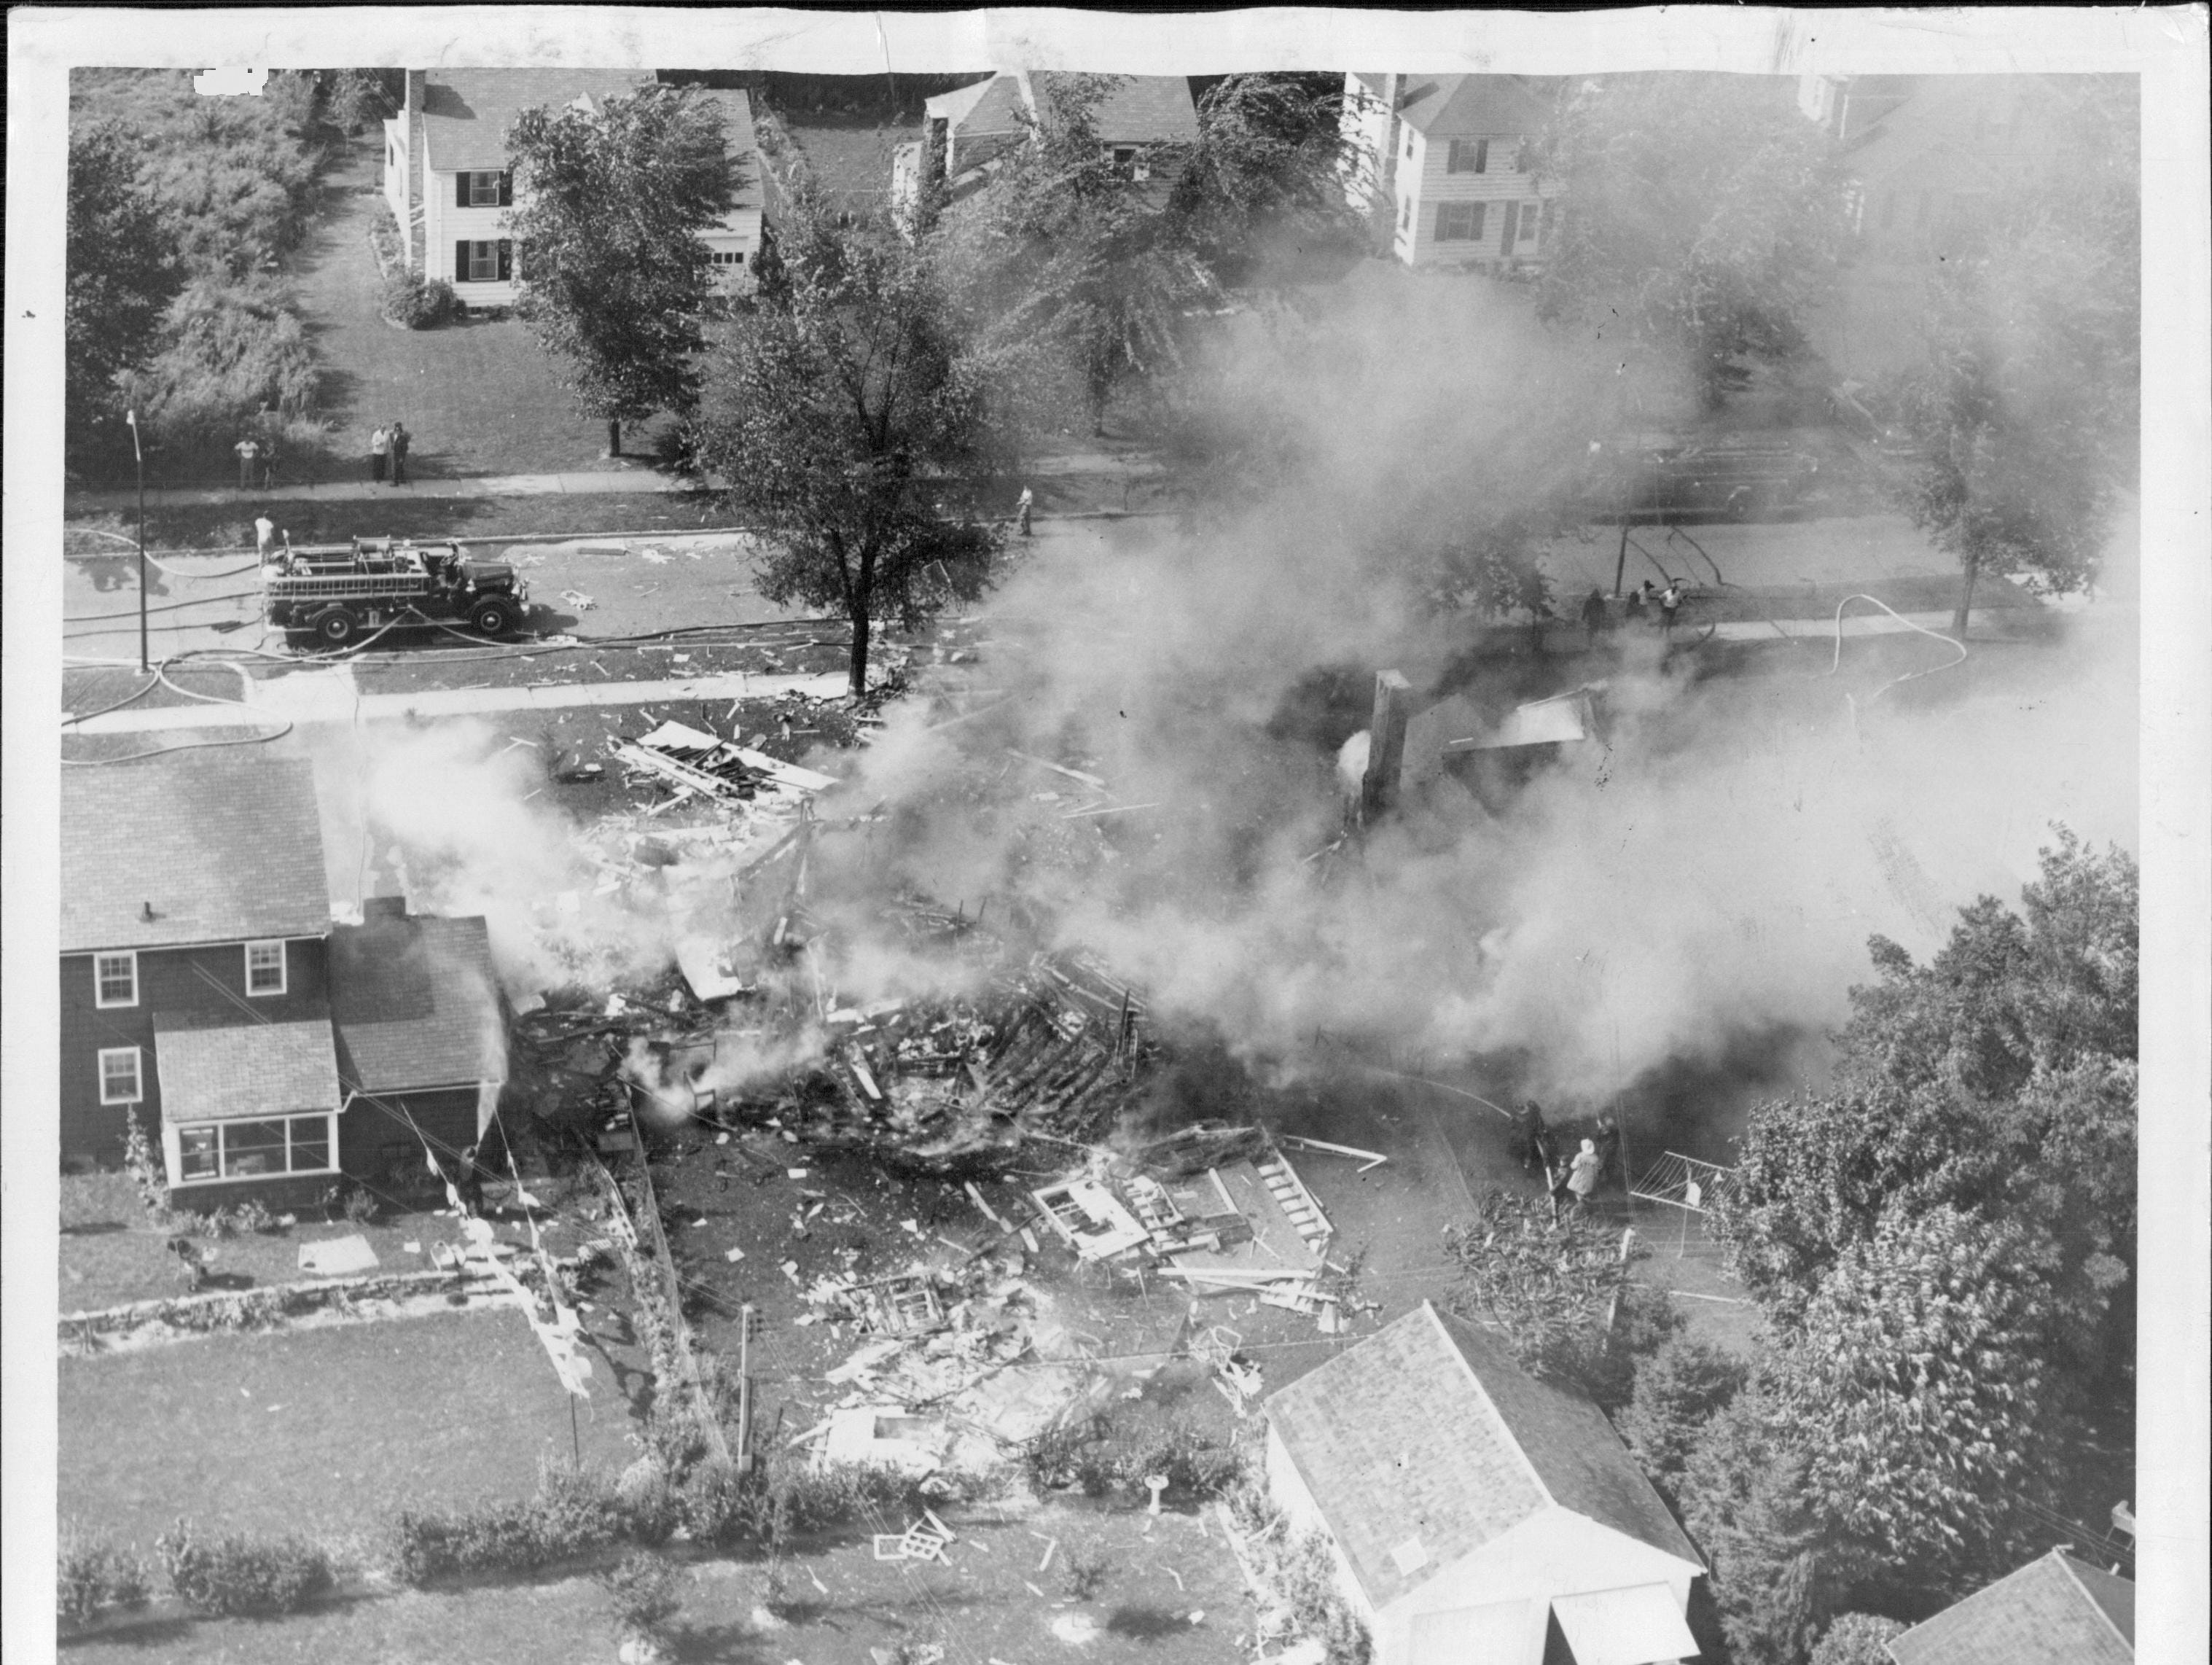 A Brighton home reduced to rubble.  (Staff photo, 9/21/1951)